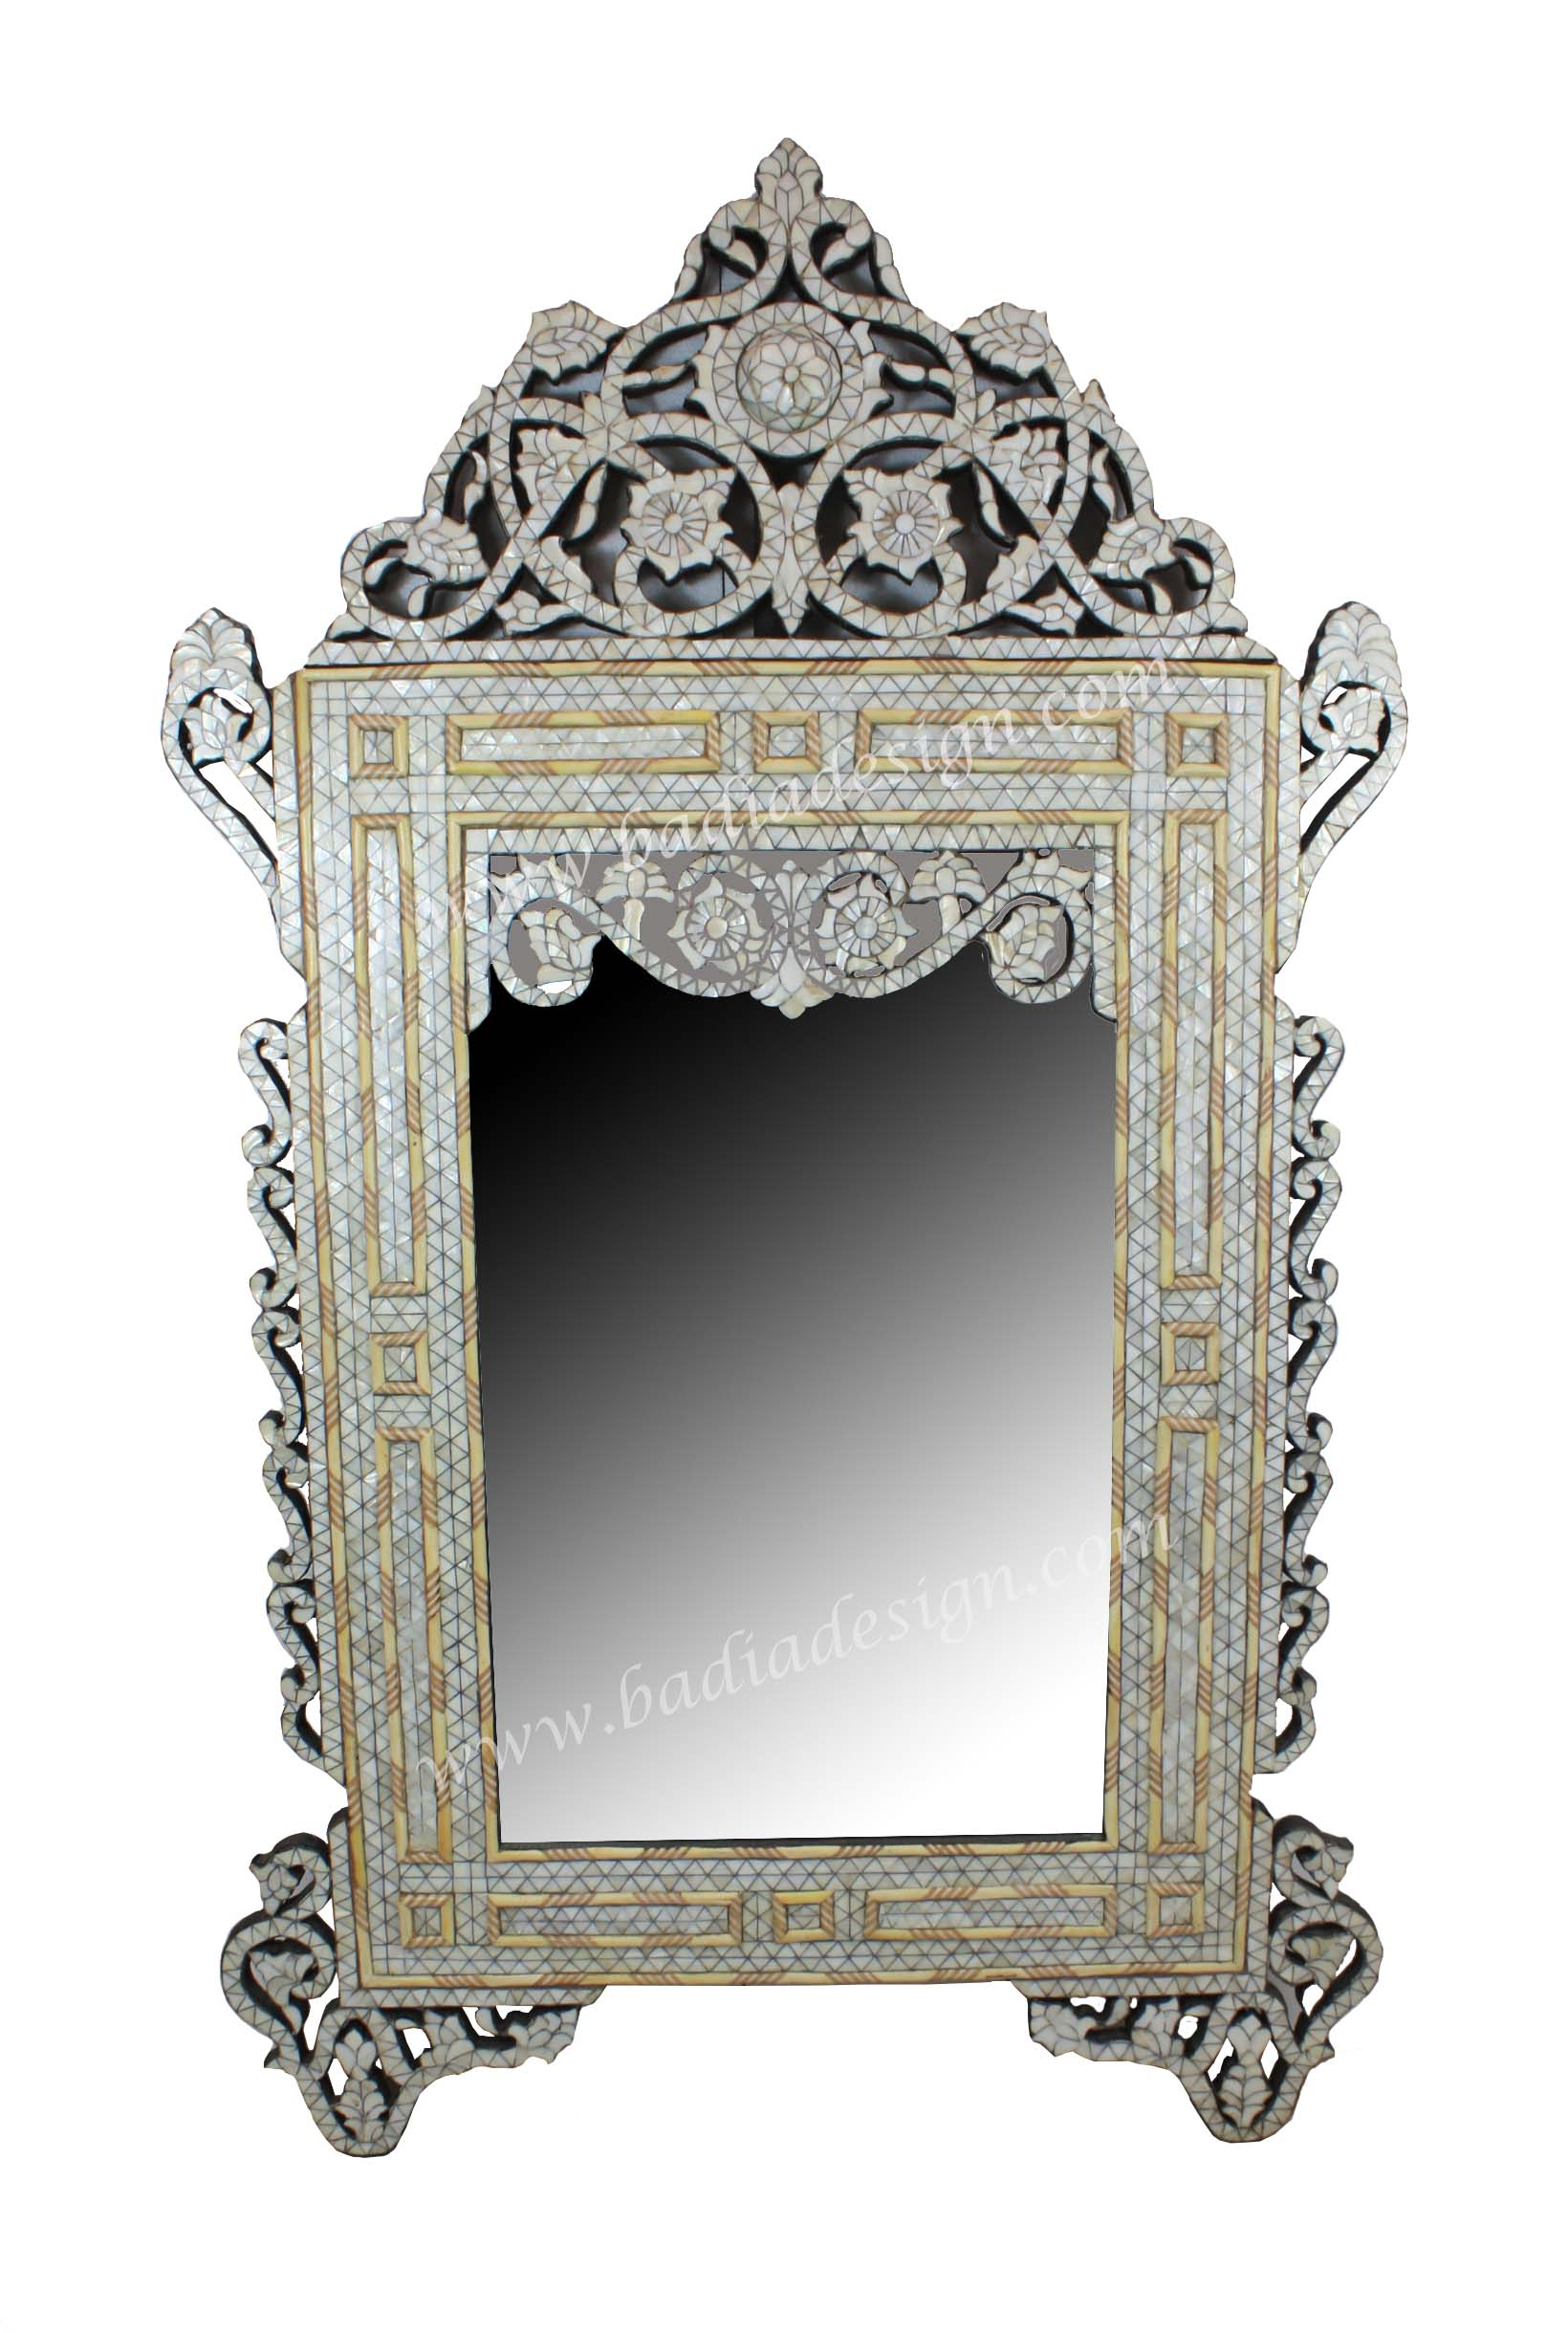 large-moroccan-mother-of-pearl-mirror-m-mop023.jpg